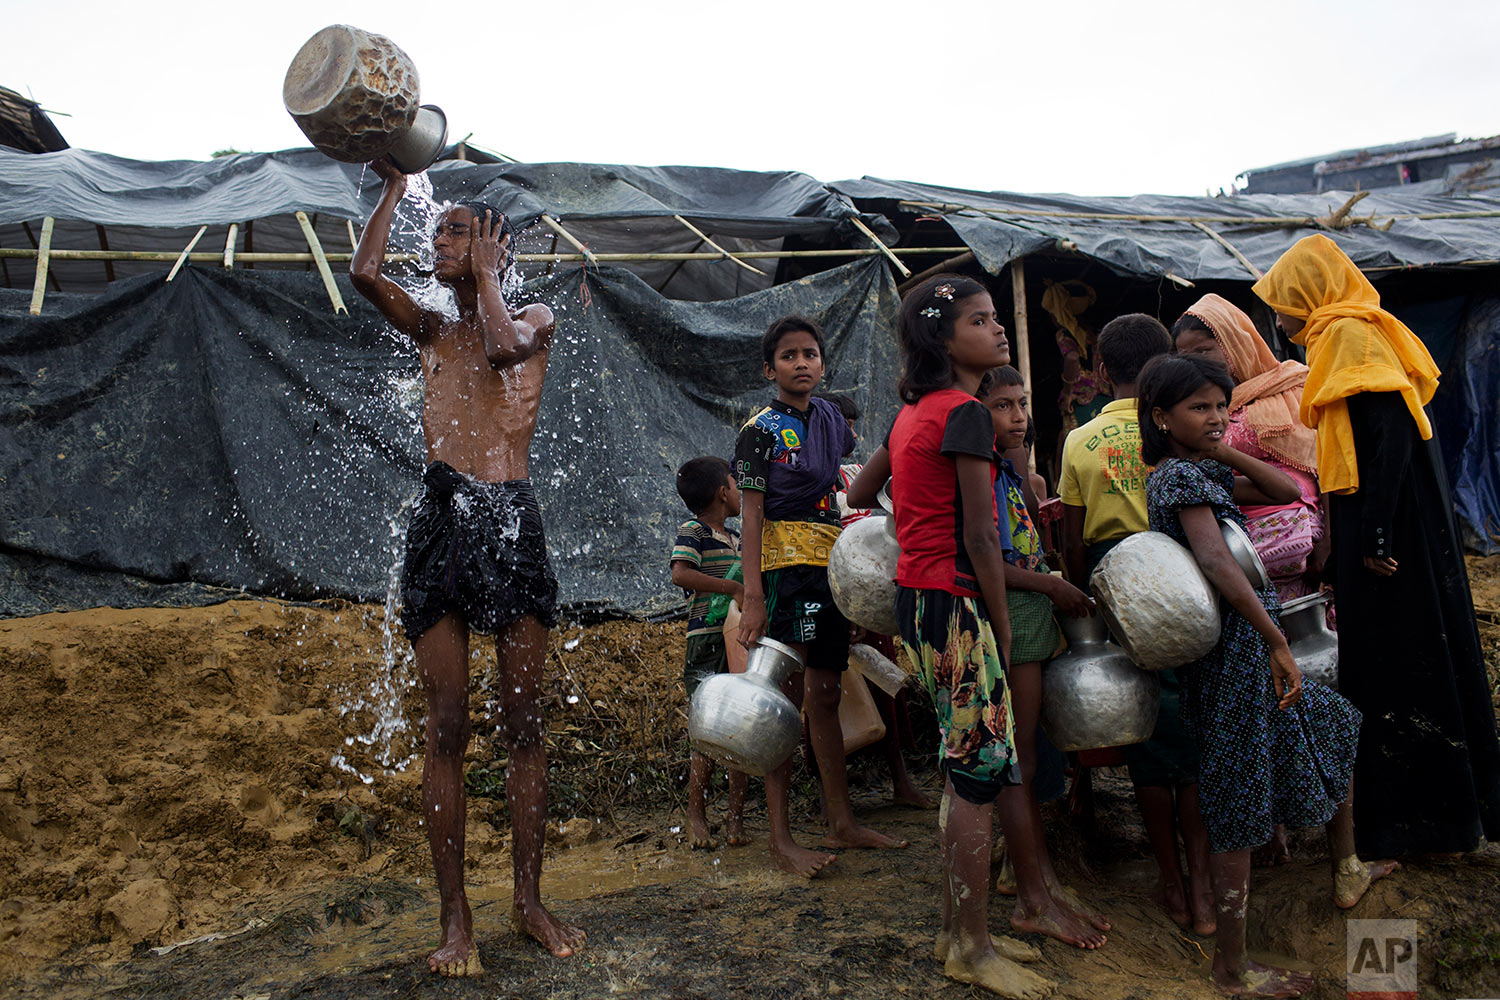 Newly arrived Rohingya wait to collect water from a tube well that was installed a few days ago, as a boy bathes beside them, at Ukhia, Bangladesh, Saturday, Sept. 9, 2017. (AP Photo/Bernat Armangue)